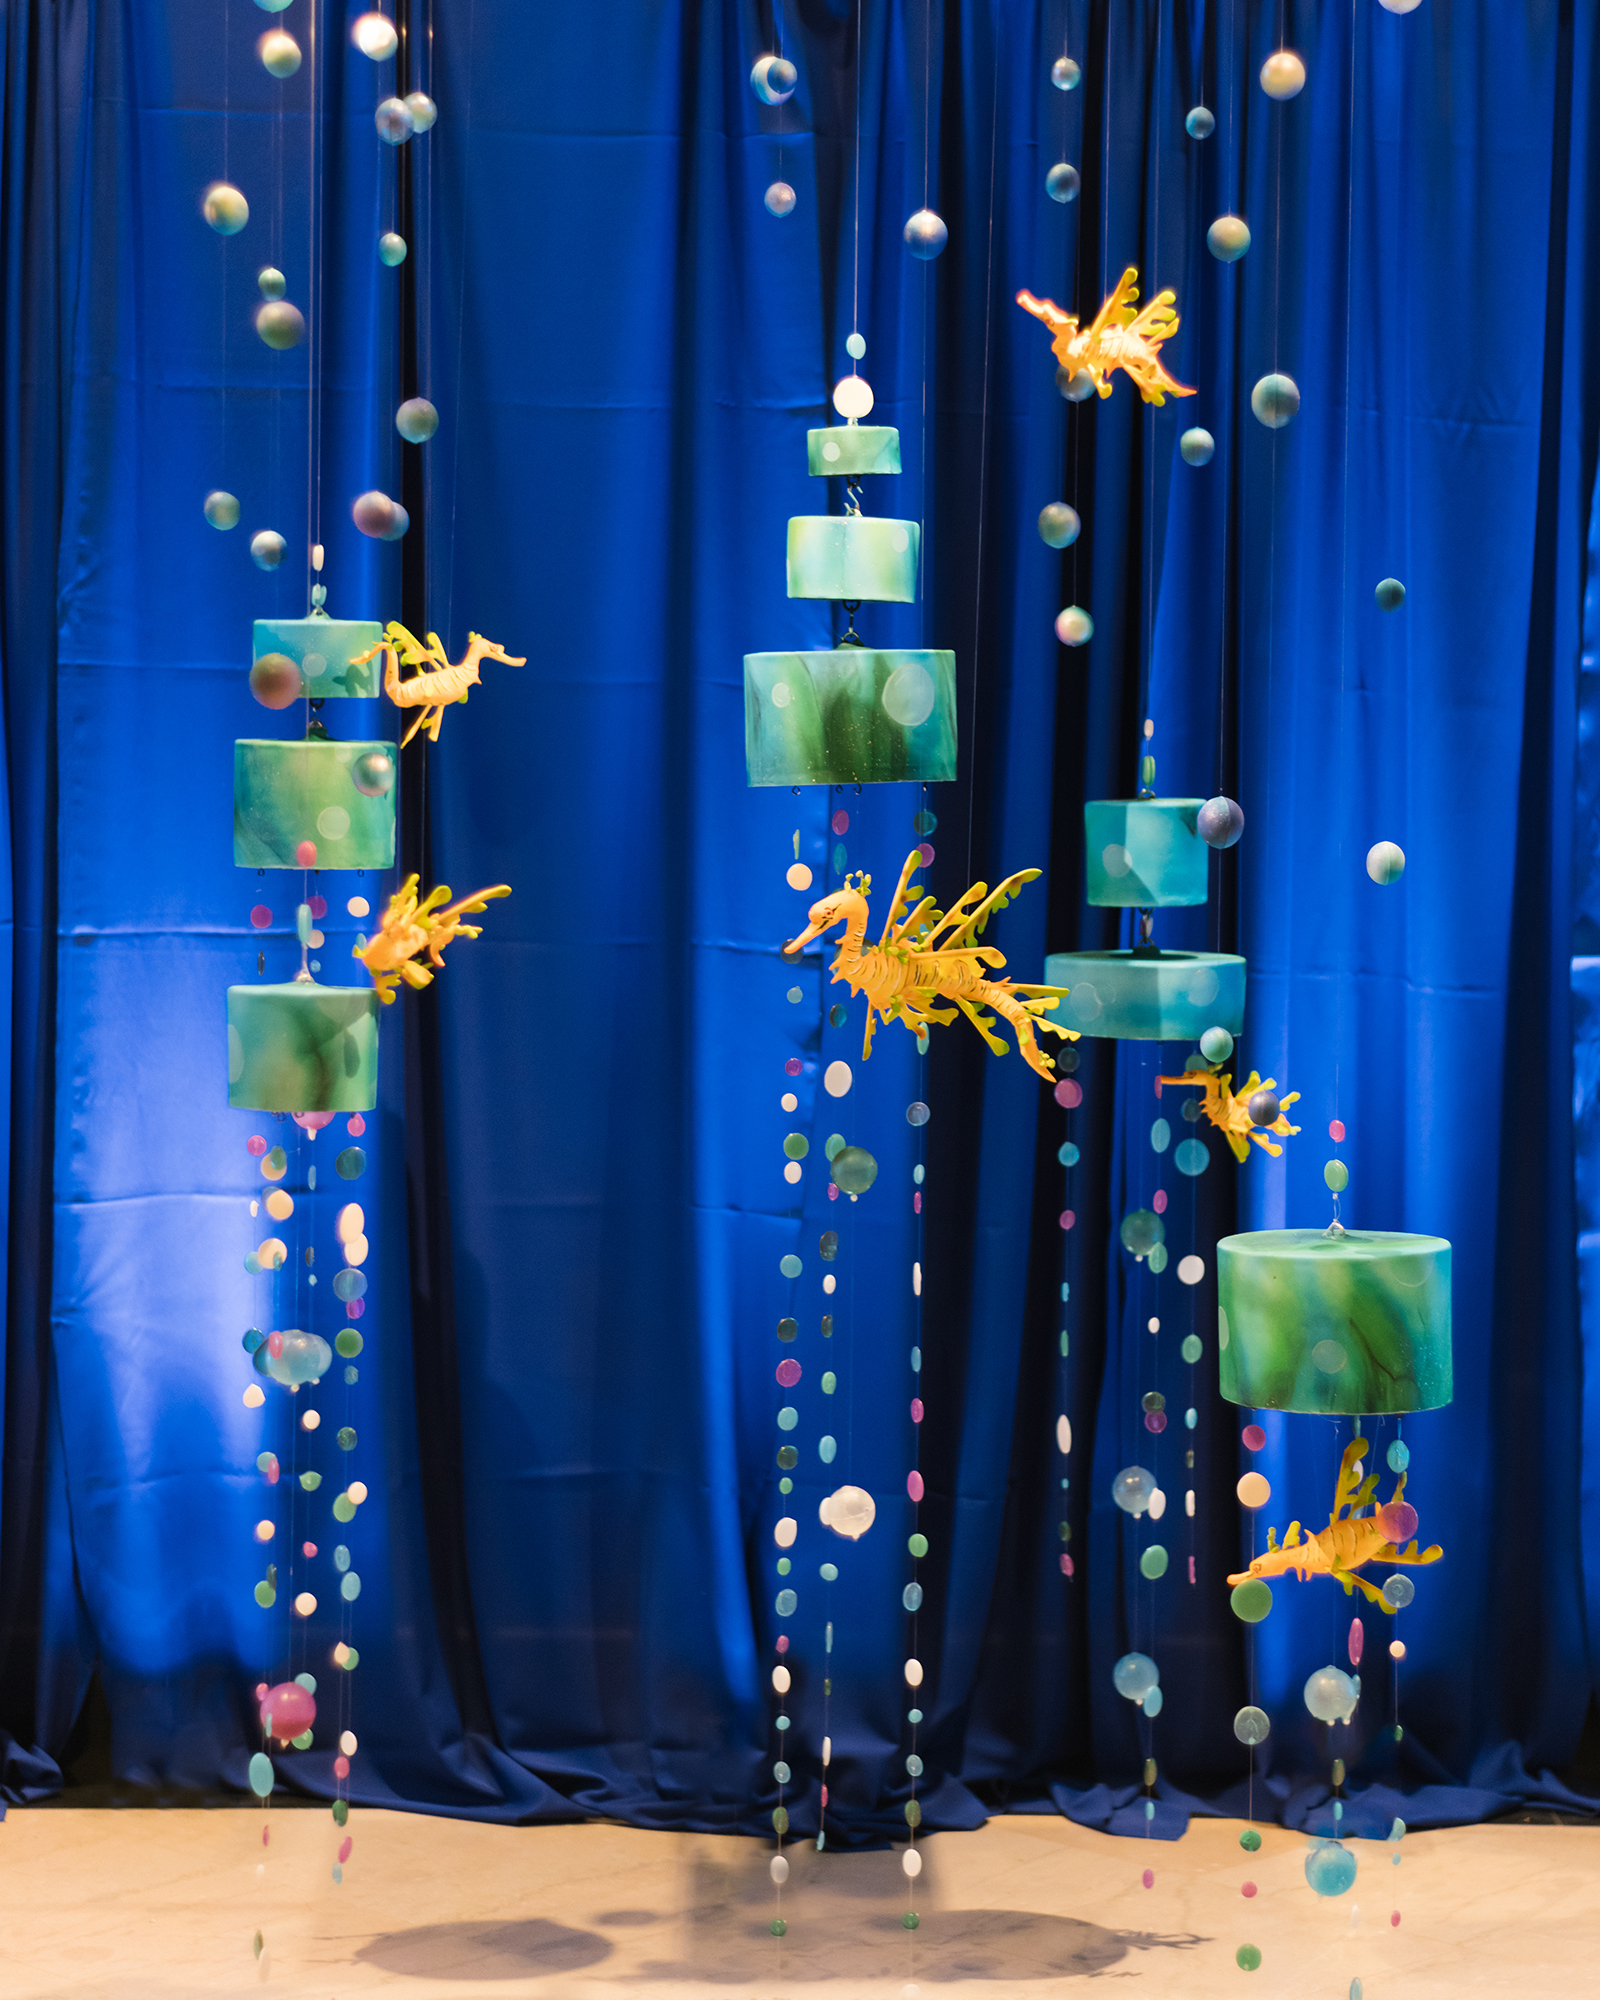 duff goldman ocean wedding cake installation